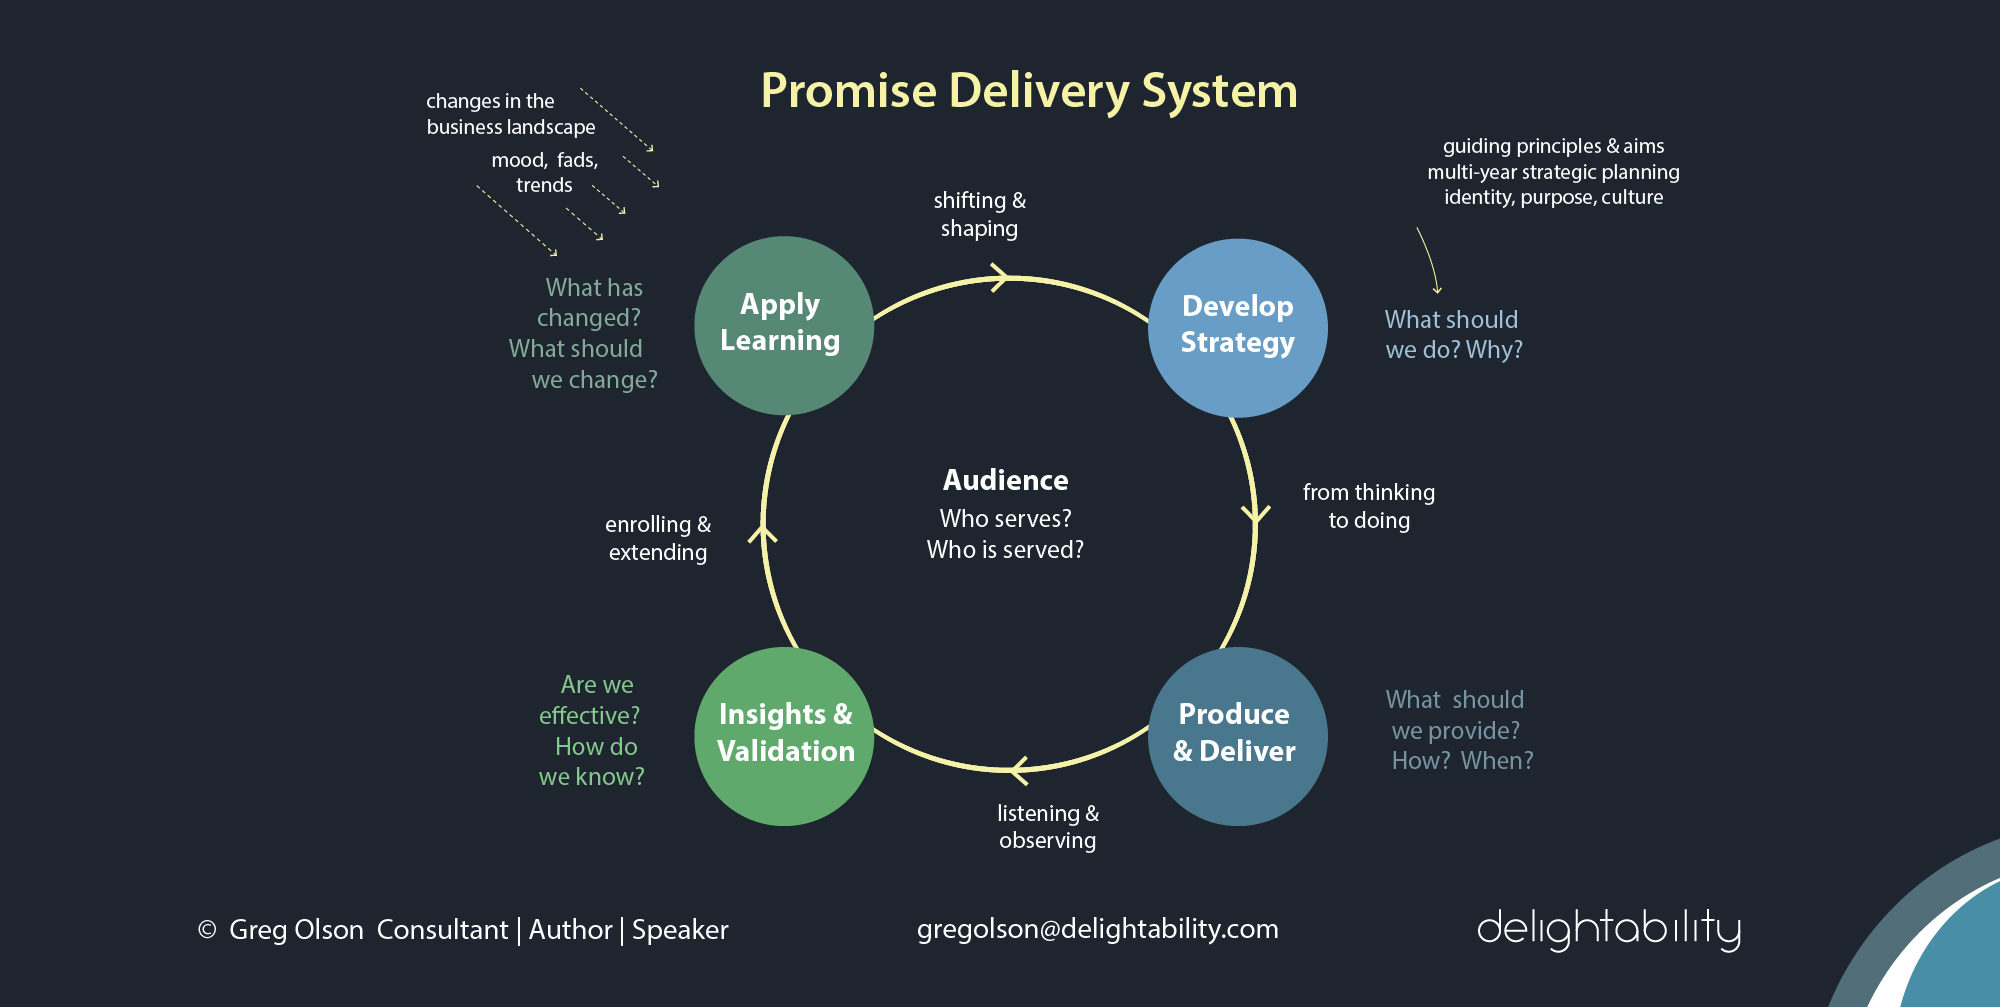 Promise delivery system delightability image of promise delivery system from gregory olson delightability consultant and author of the experience malvernweather Gallery